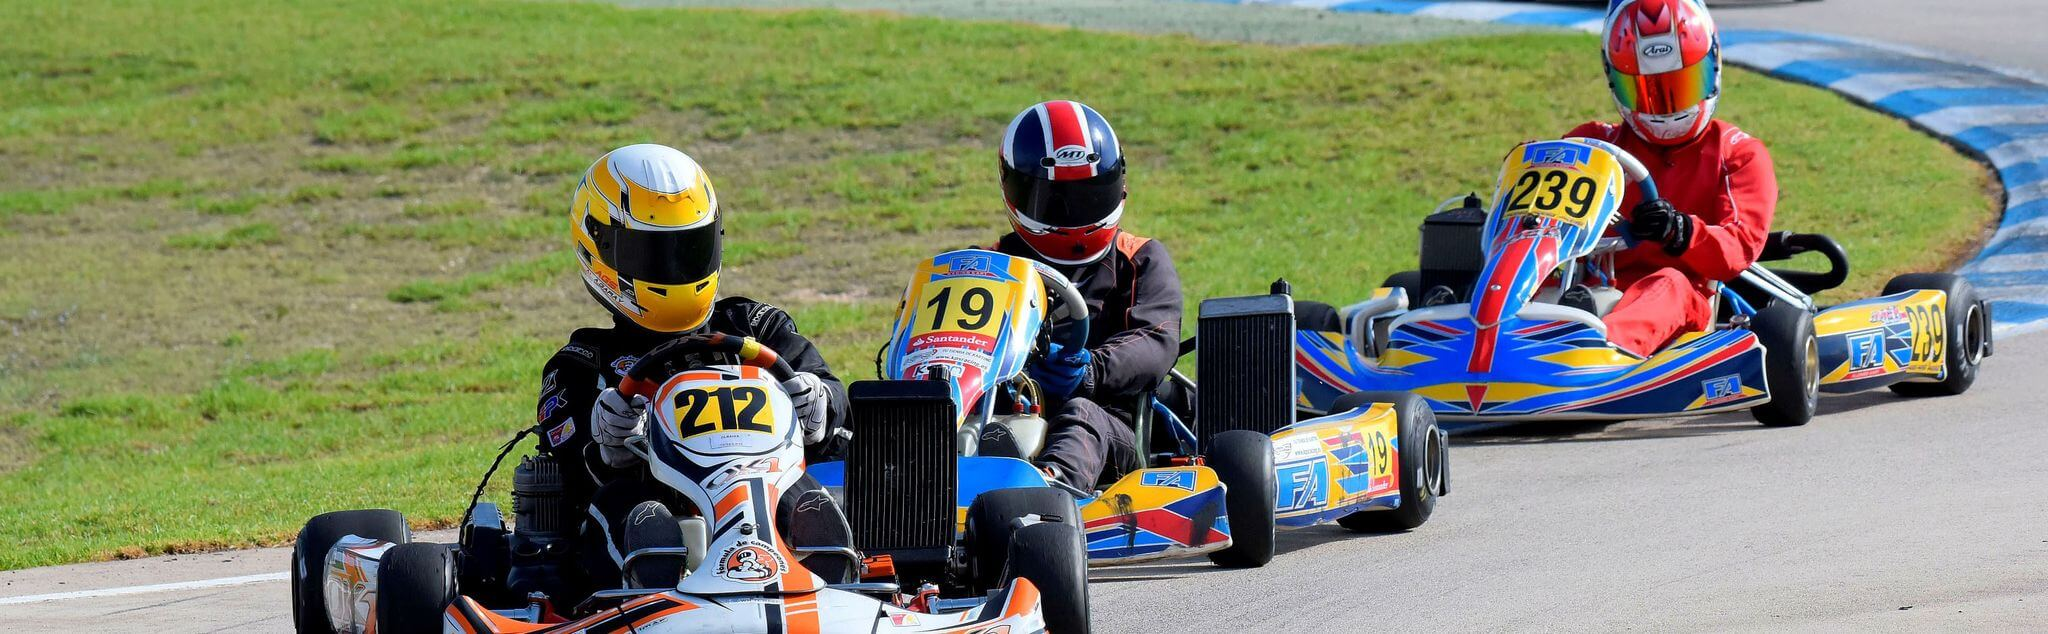 Kart a Morcone